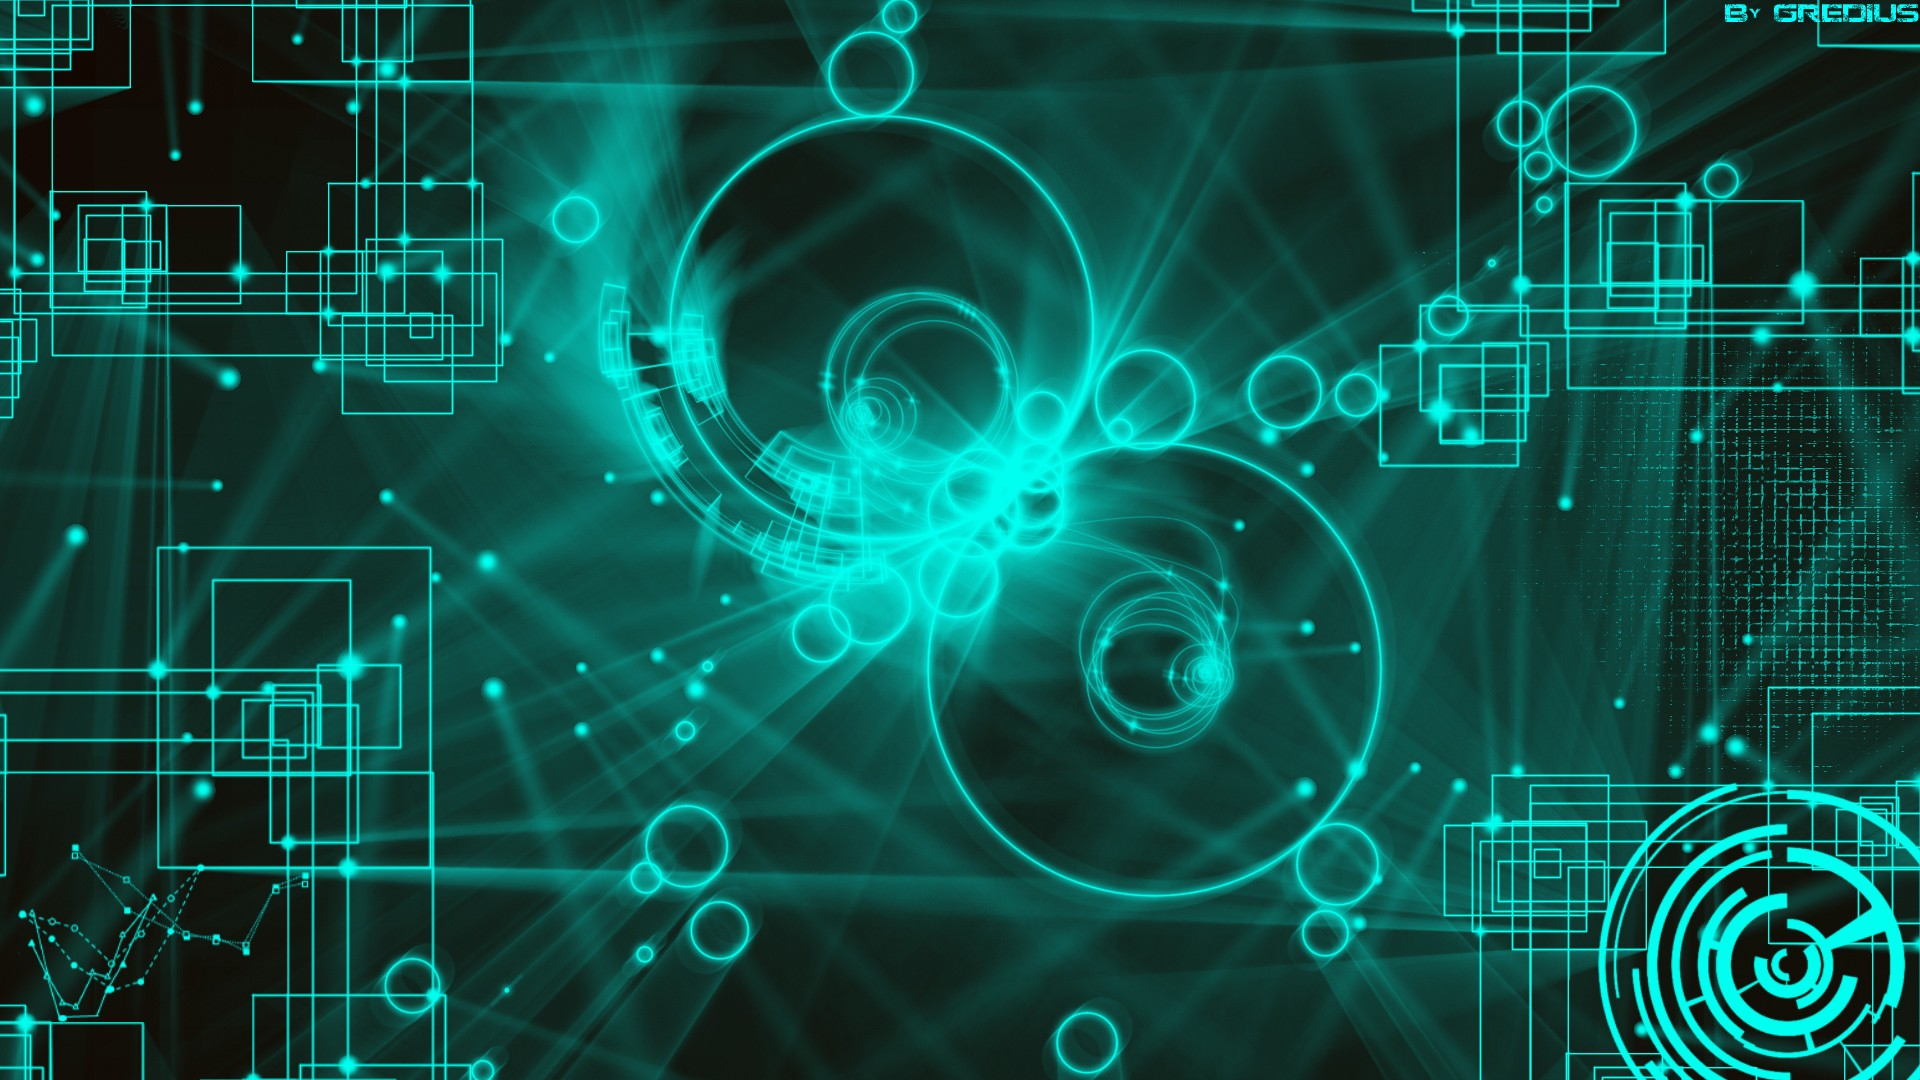 technology shapes digital art backgrounds squares Wallpapers 1920x1080